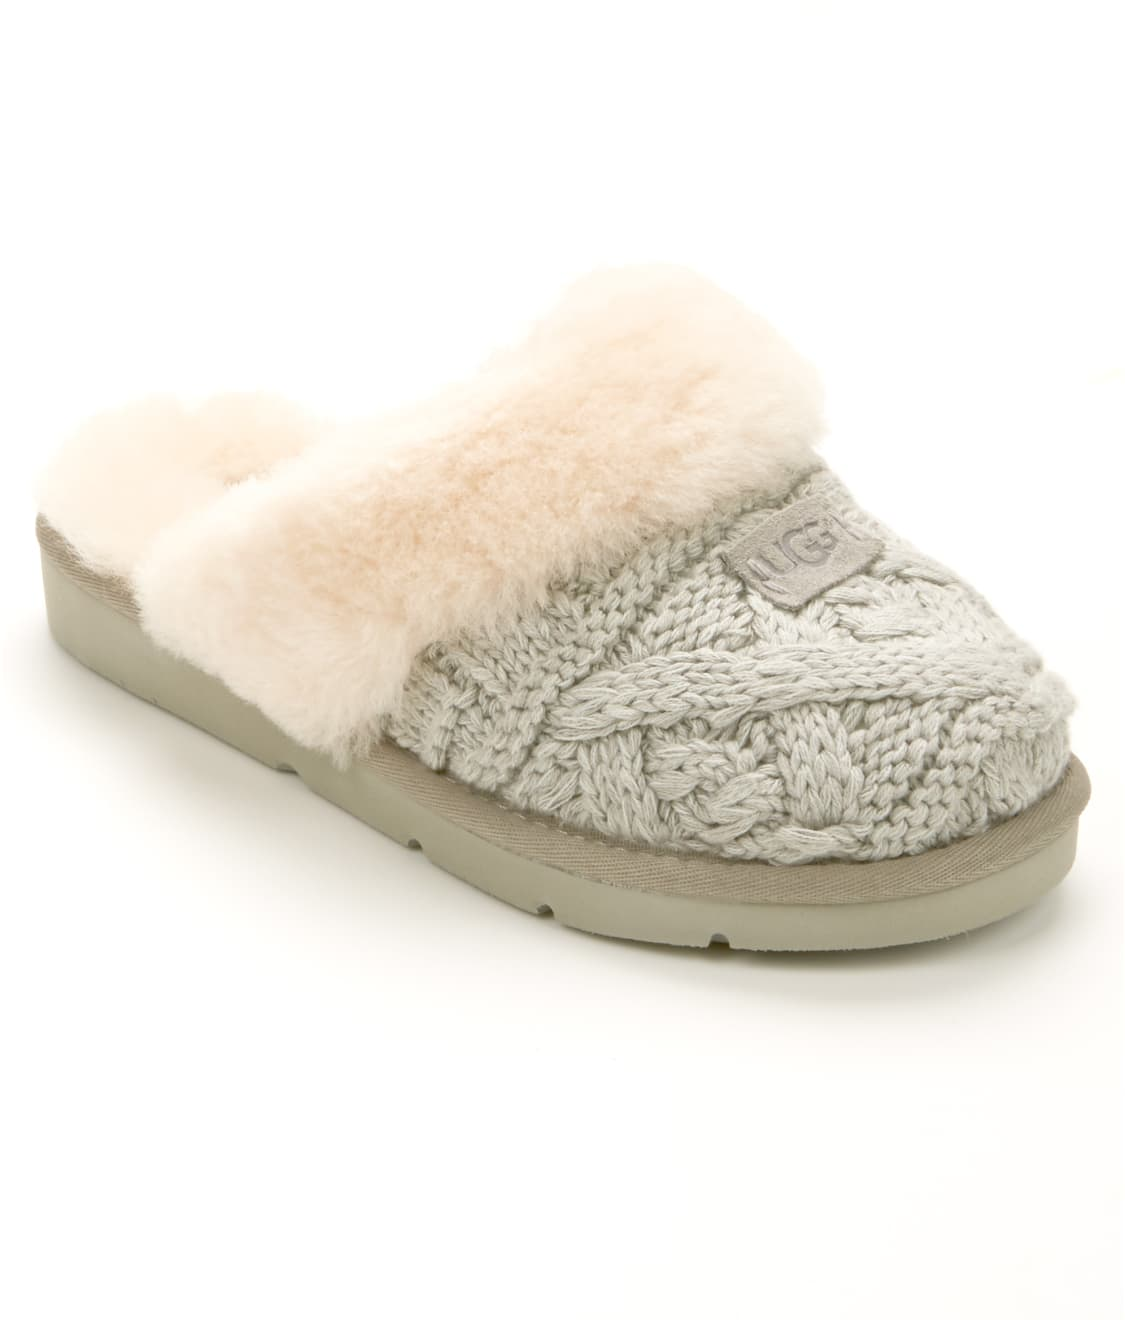 6970a8a7bb2 UGG Cozy Cable Knit Slippers | Bare Necessities (1019666)